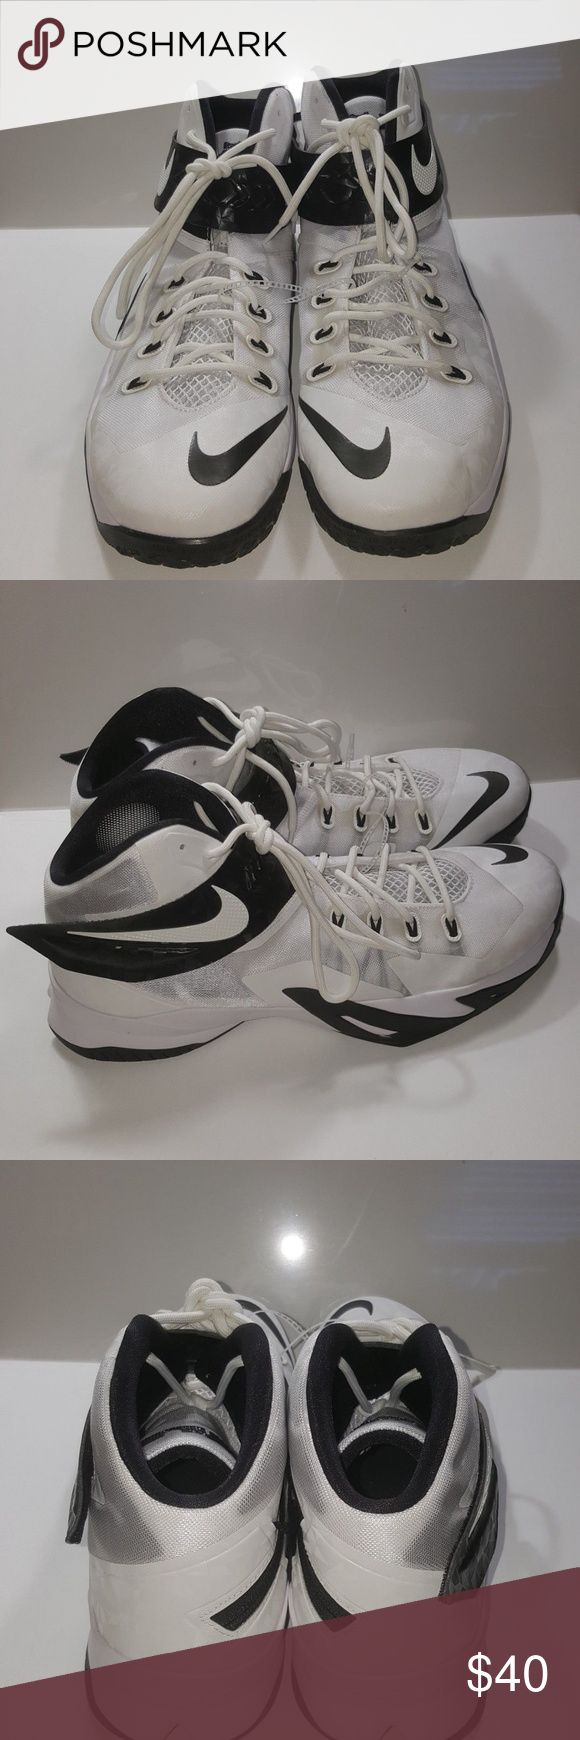 NIKE LEBRON ZOOM SOLDIER VIII 653648-100 NIKE LEBRON ZOOM SOLDIER VIII 653648-100 White Black Basketball Shoes 16.5 NEW  New without box Thank you for viewing our posh store if you have any questions please do not hesitate to ask questions about the items you want to buy. We are constantly working on improving our customer service and overall satisfaction. Follow our posh store for updates and deals, thank you for supporting us. Nike Shoes Athletic Shoes